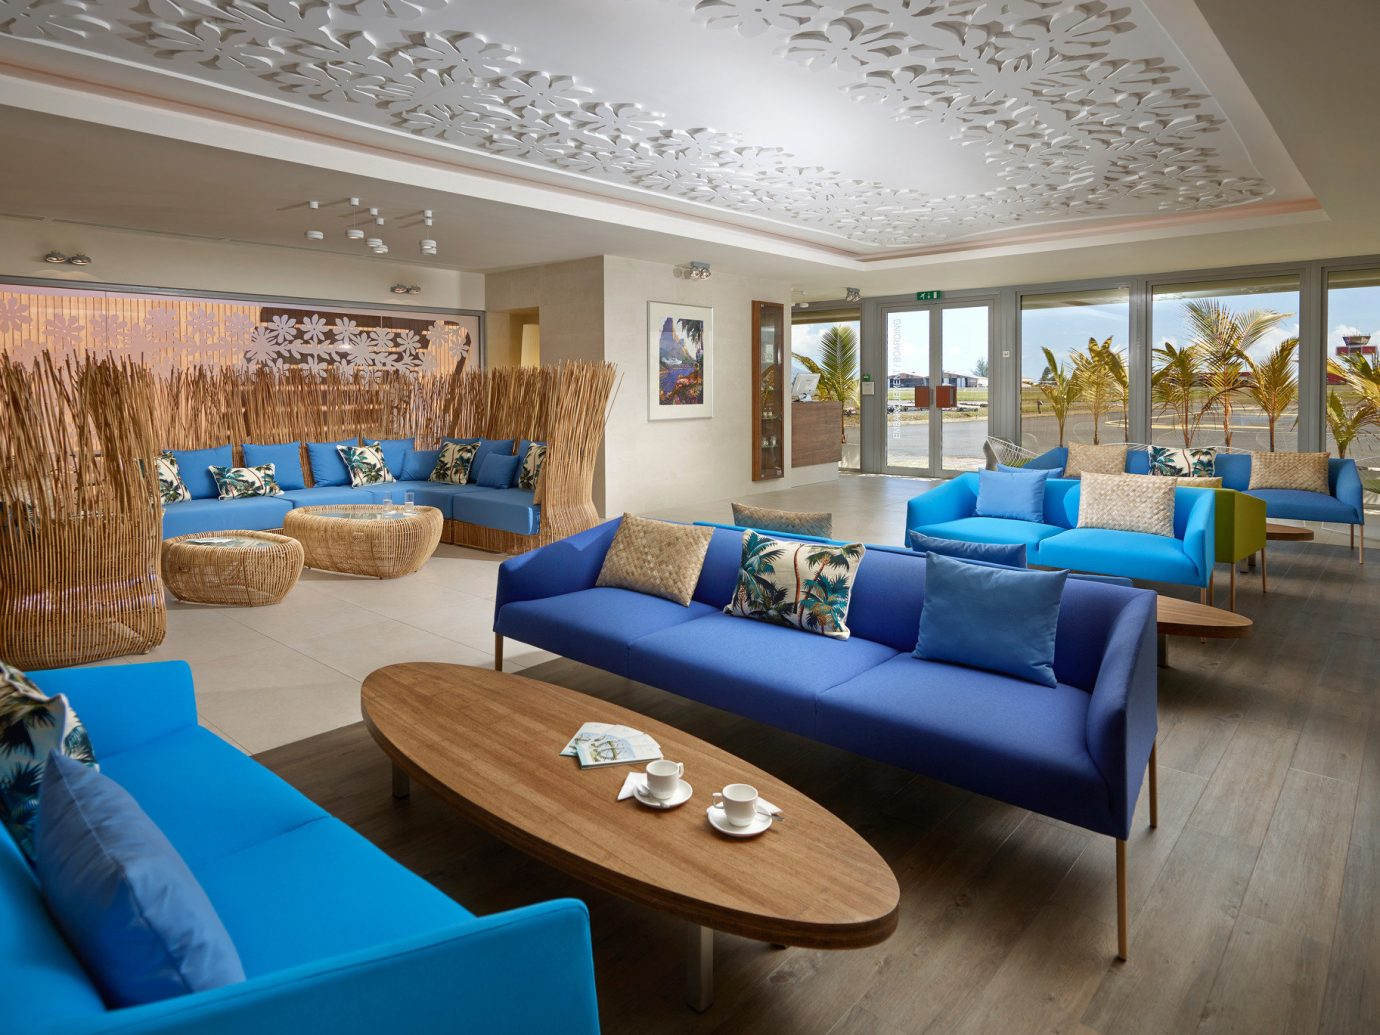 All-Inclusive Resorts Family Travel Hotels Tropical indoor Living floor ceiling sofa wall room window property furniture living room blue estate interior design home Villa Resort real estate Lobby Suite mansion wood area flat decorated Modern